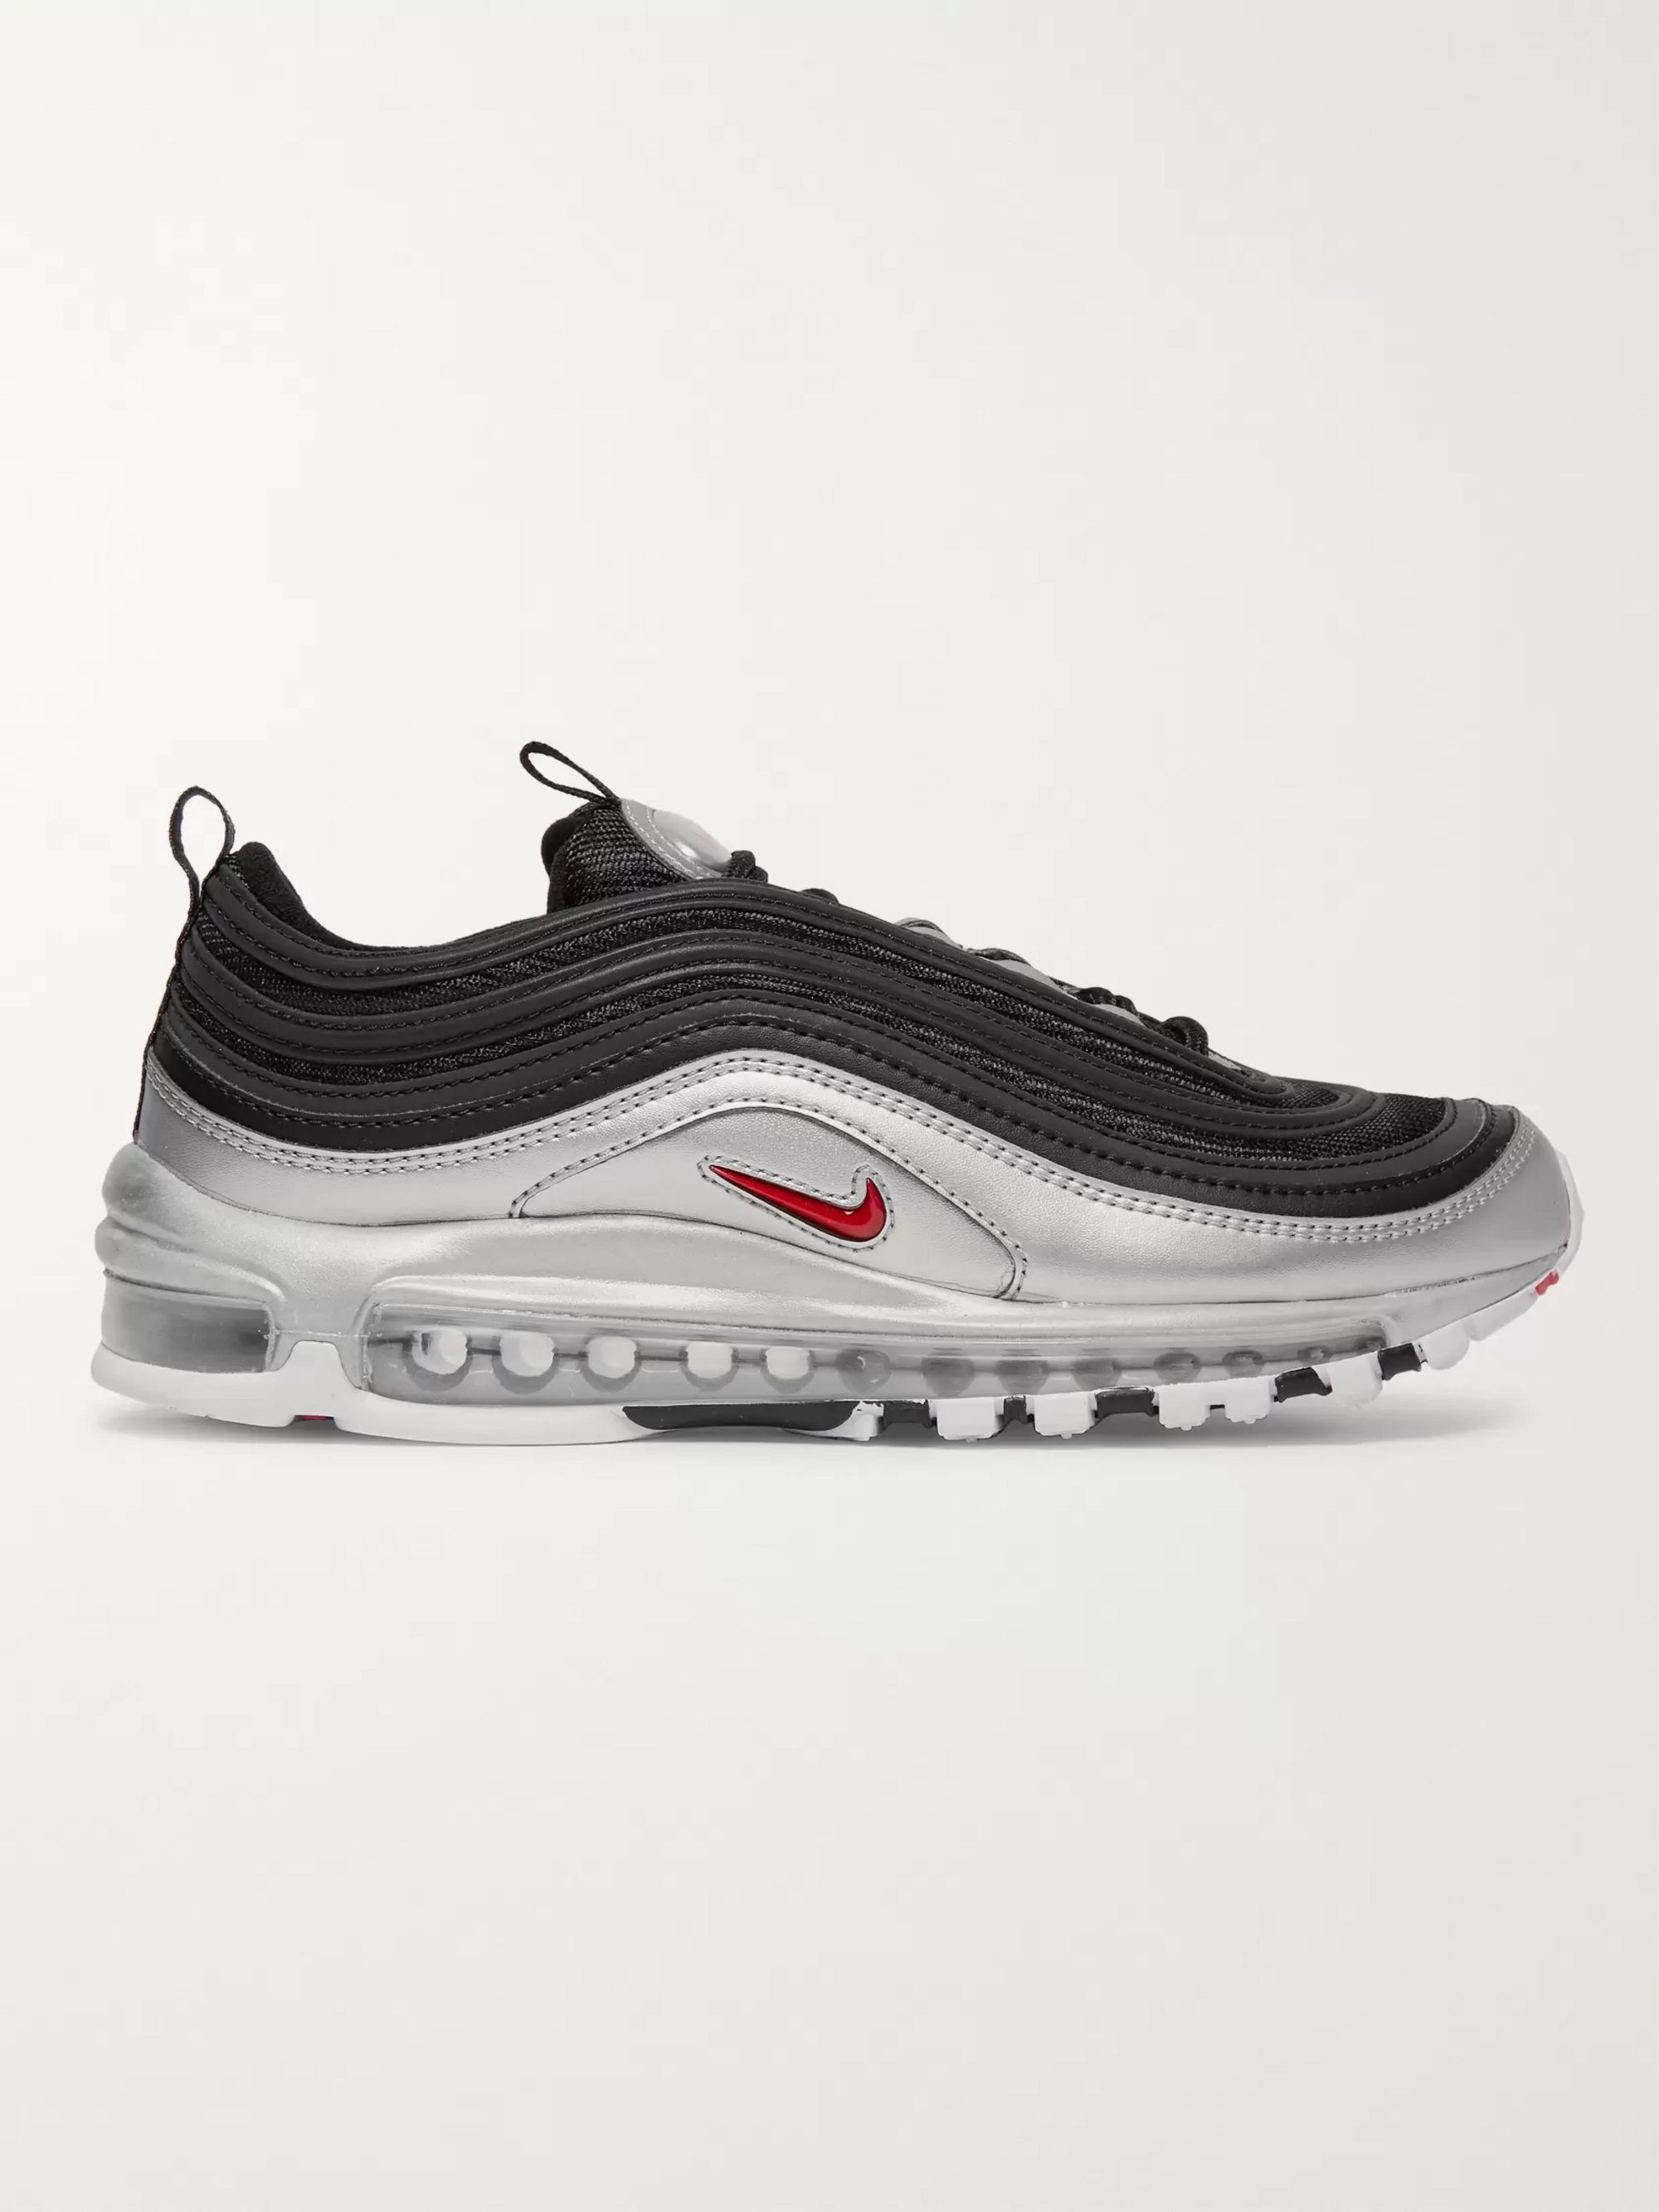 Air Max 97 QS Faux Leather and Mesh Sneakers